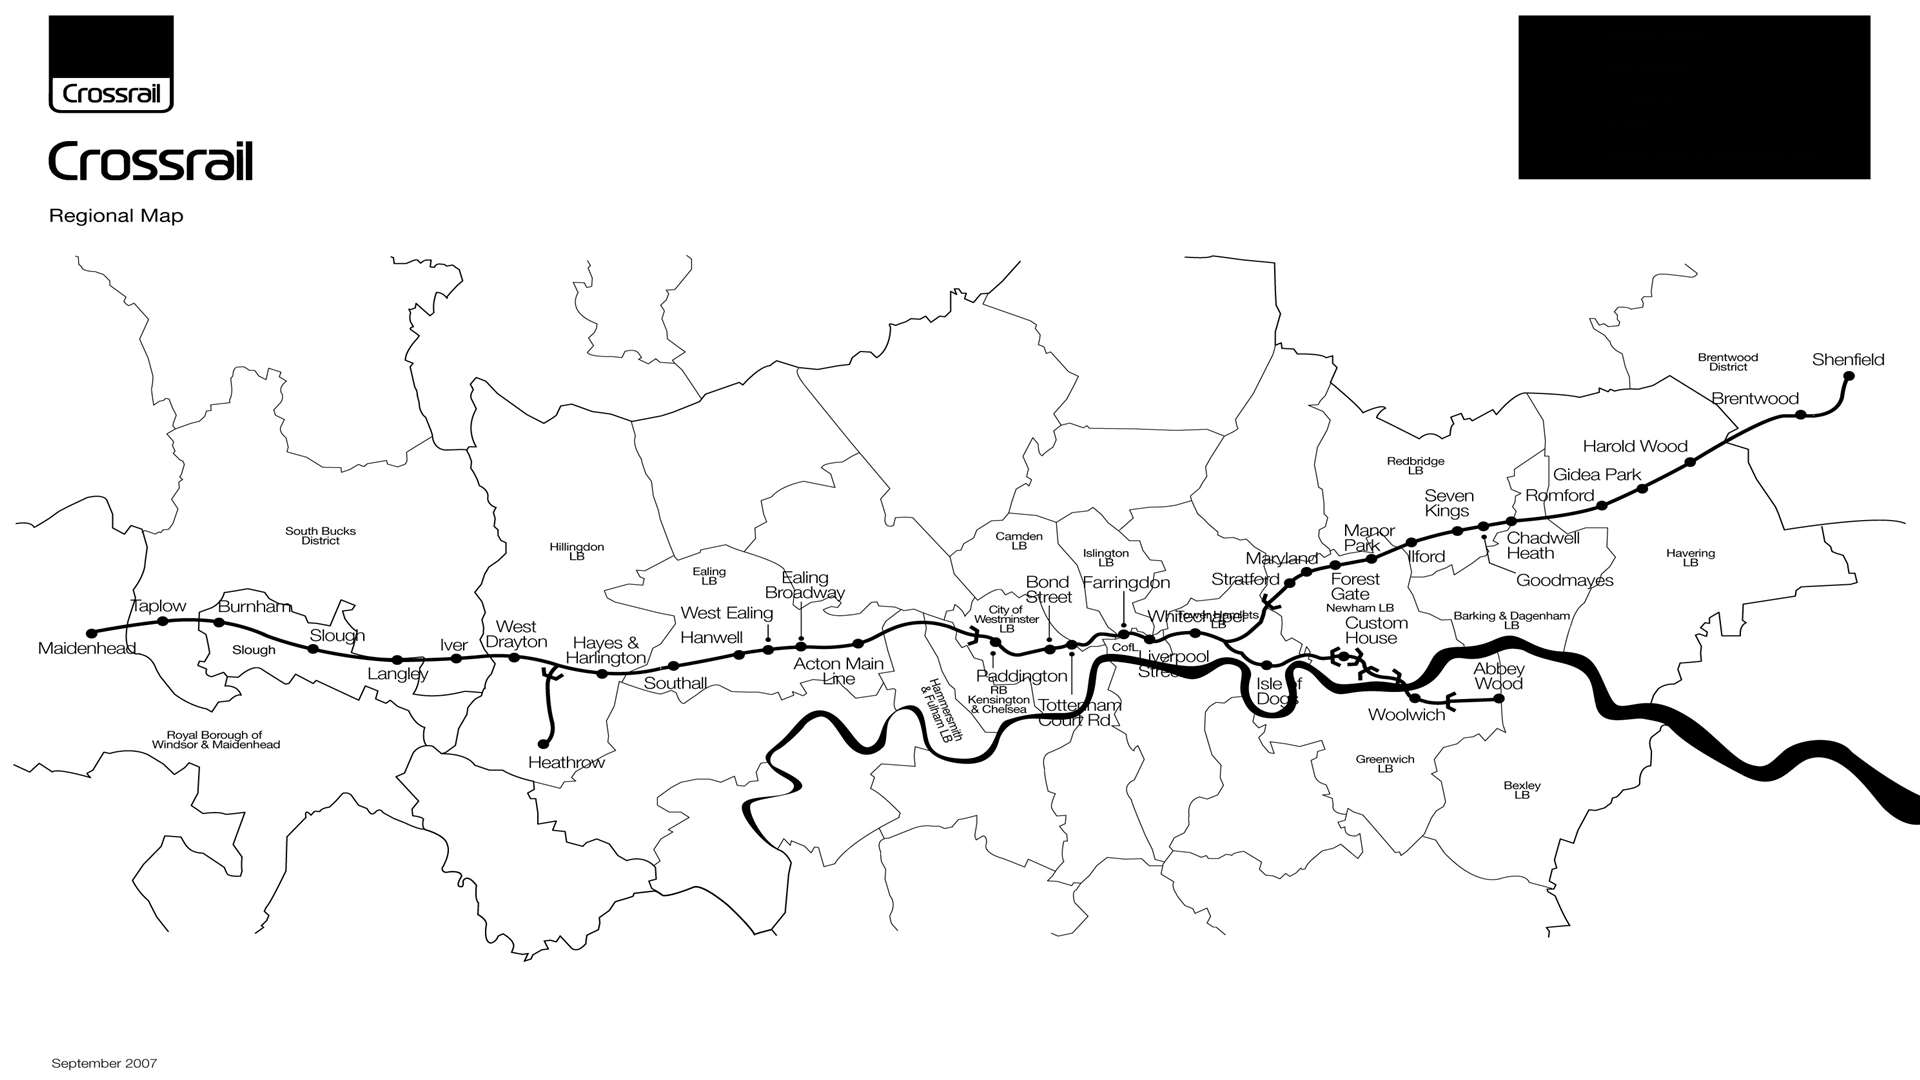 Crossrail is currently only due to reach Abbey Wood